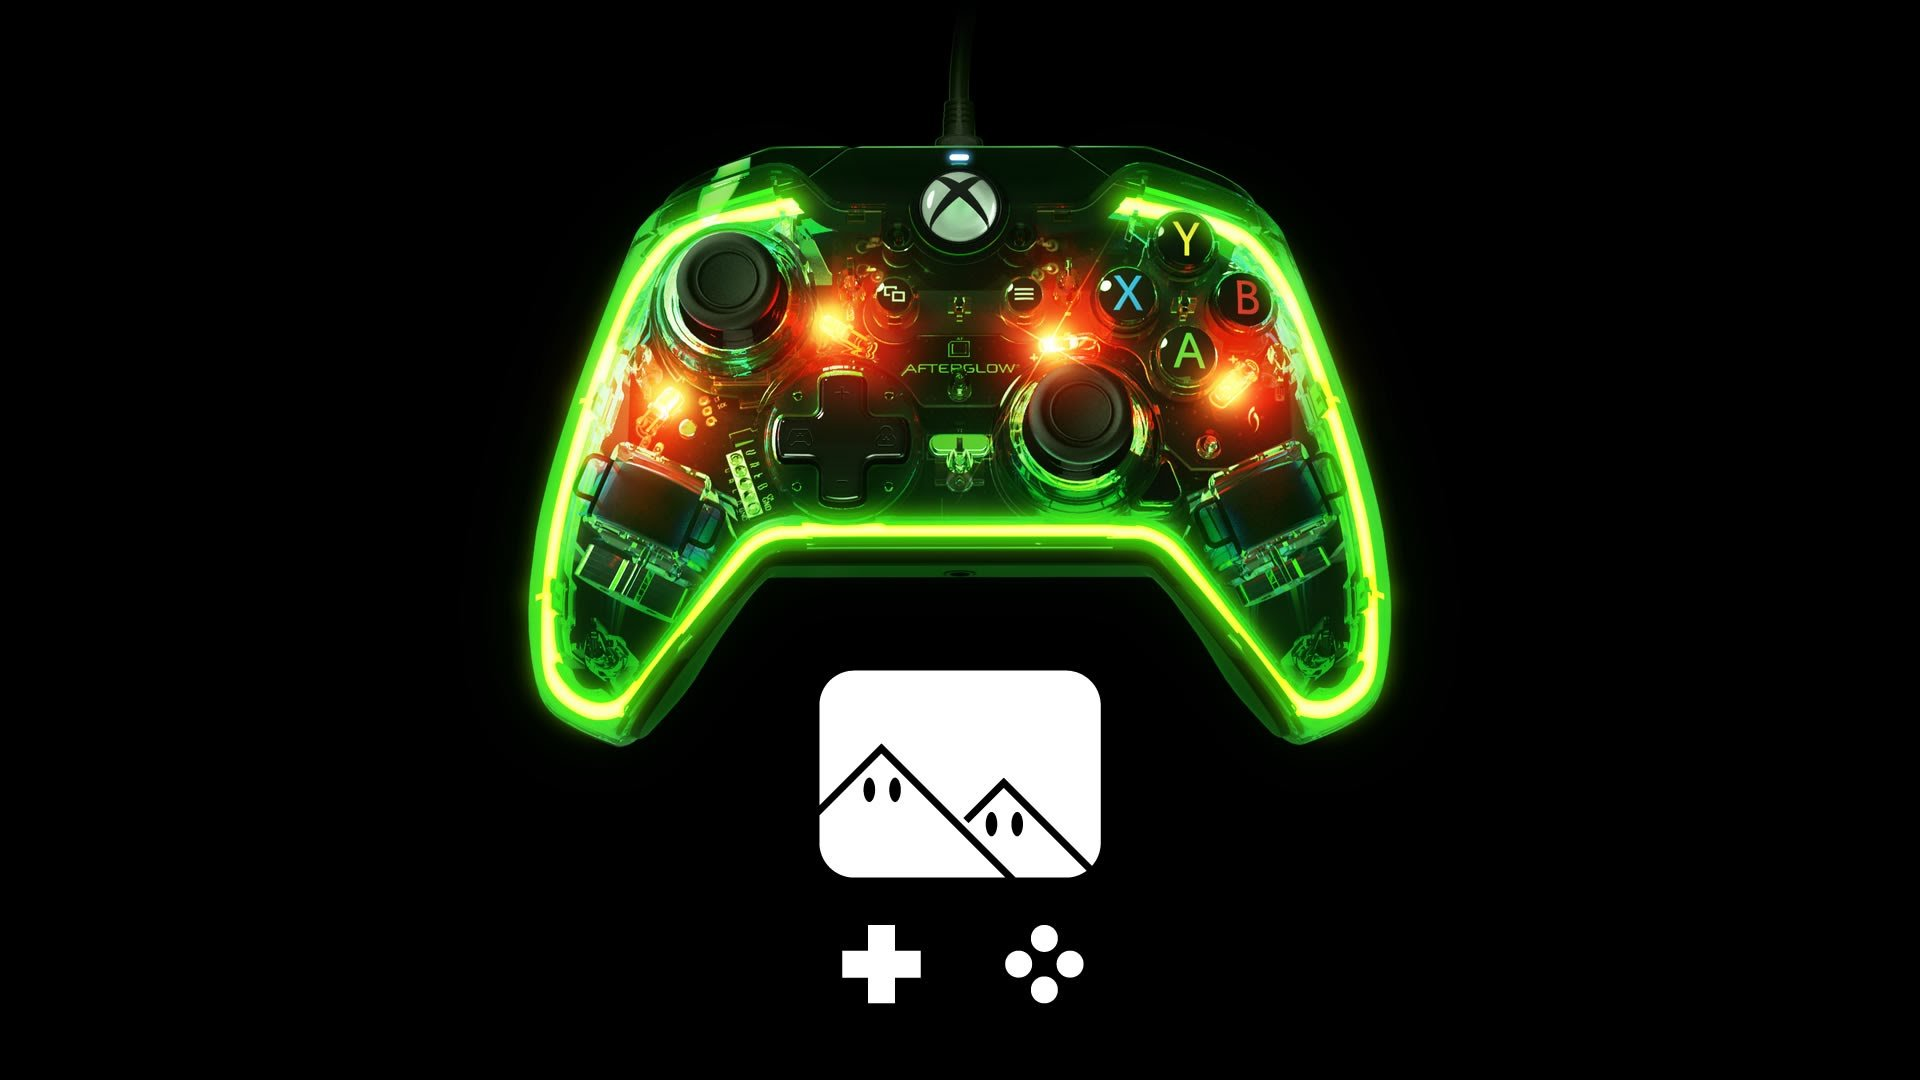 unboxing la manette xbox one pdp afterglow manette prismatic xbox one. Black Bedroom Furniture Sets. Home Design Ideas